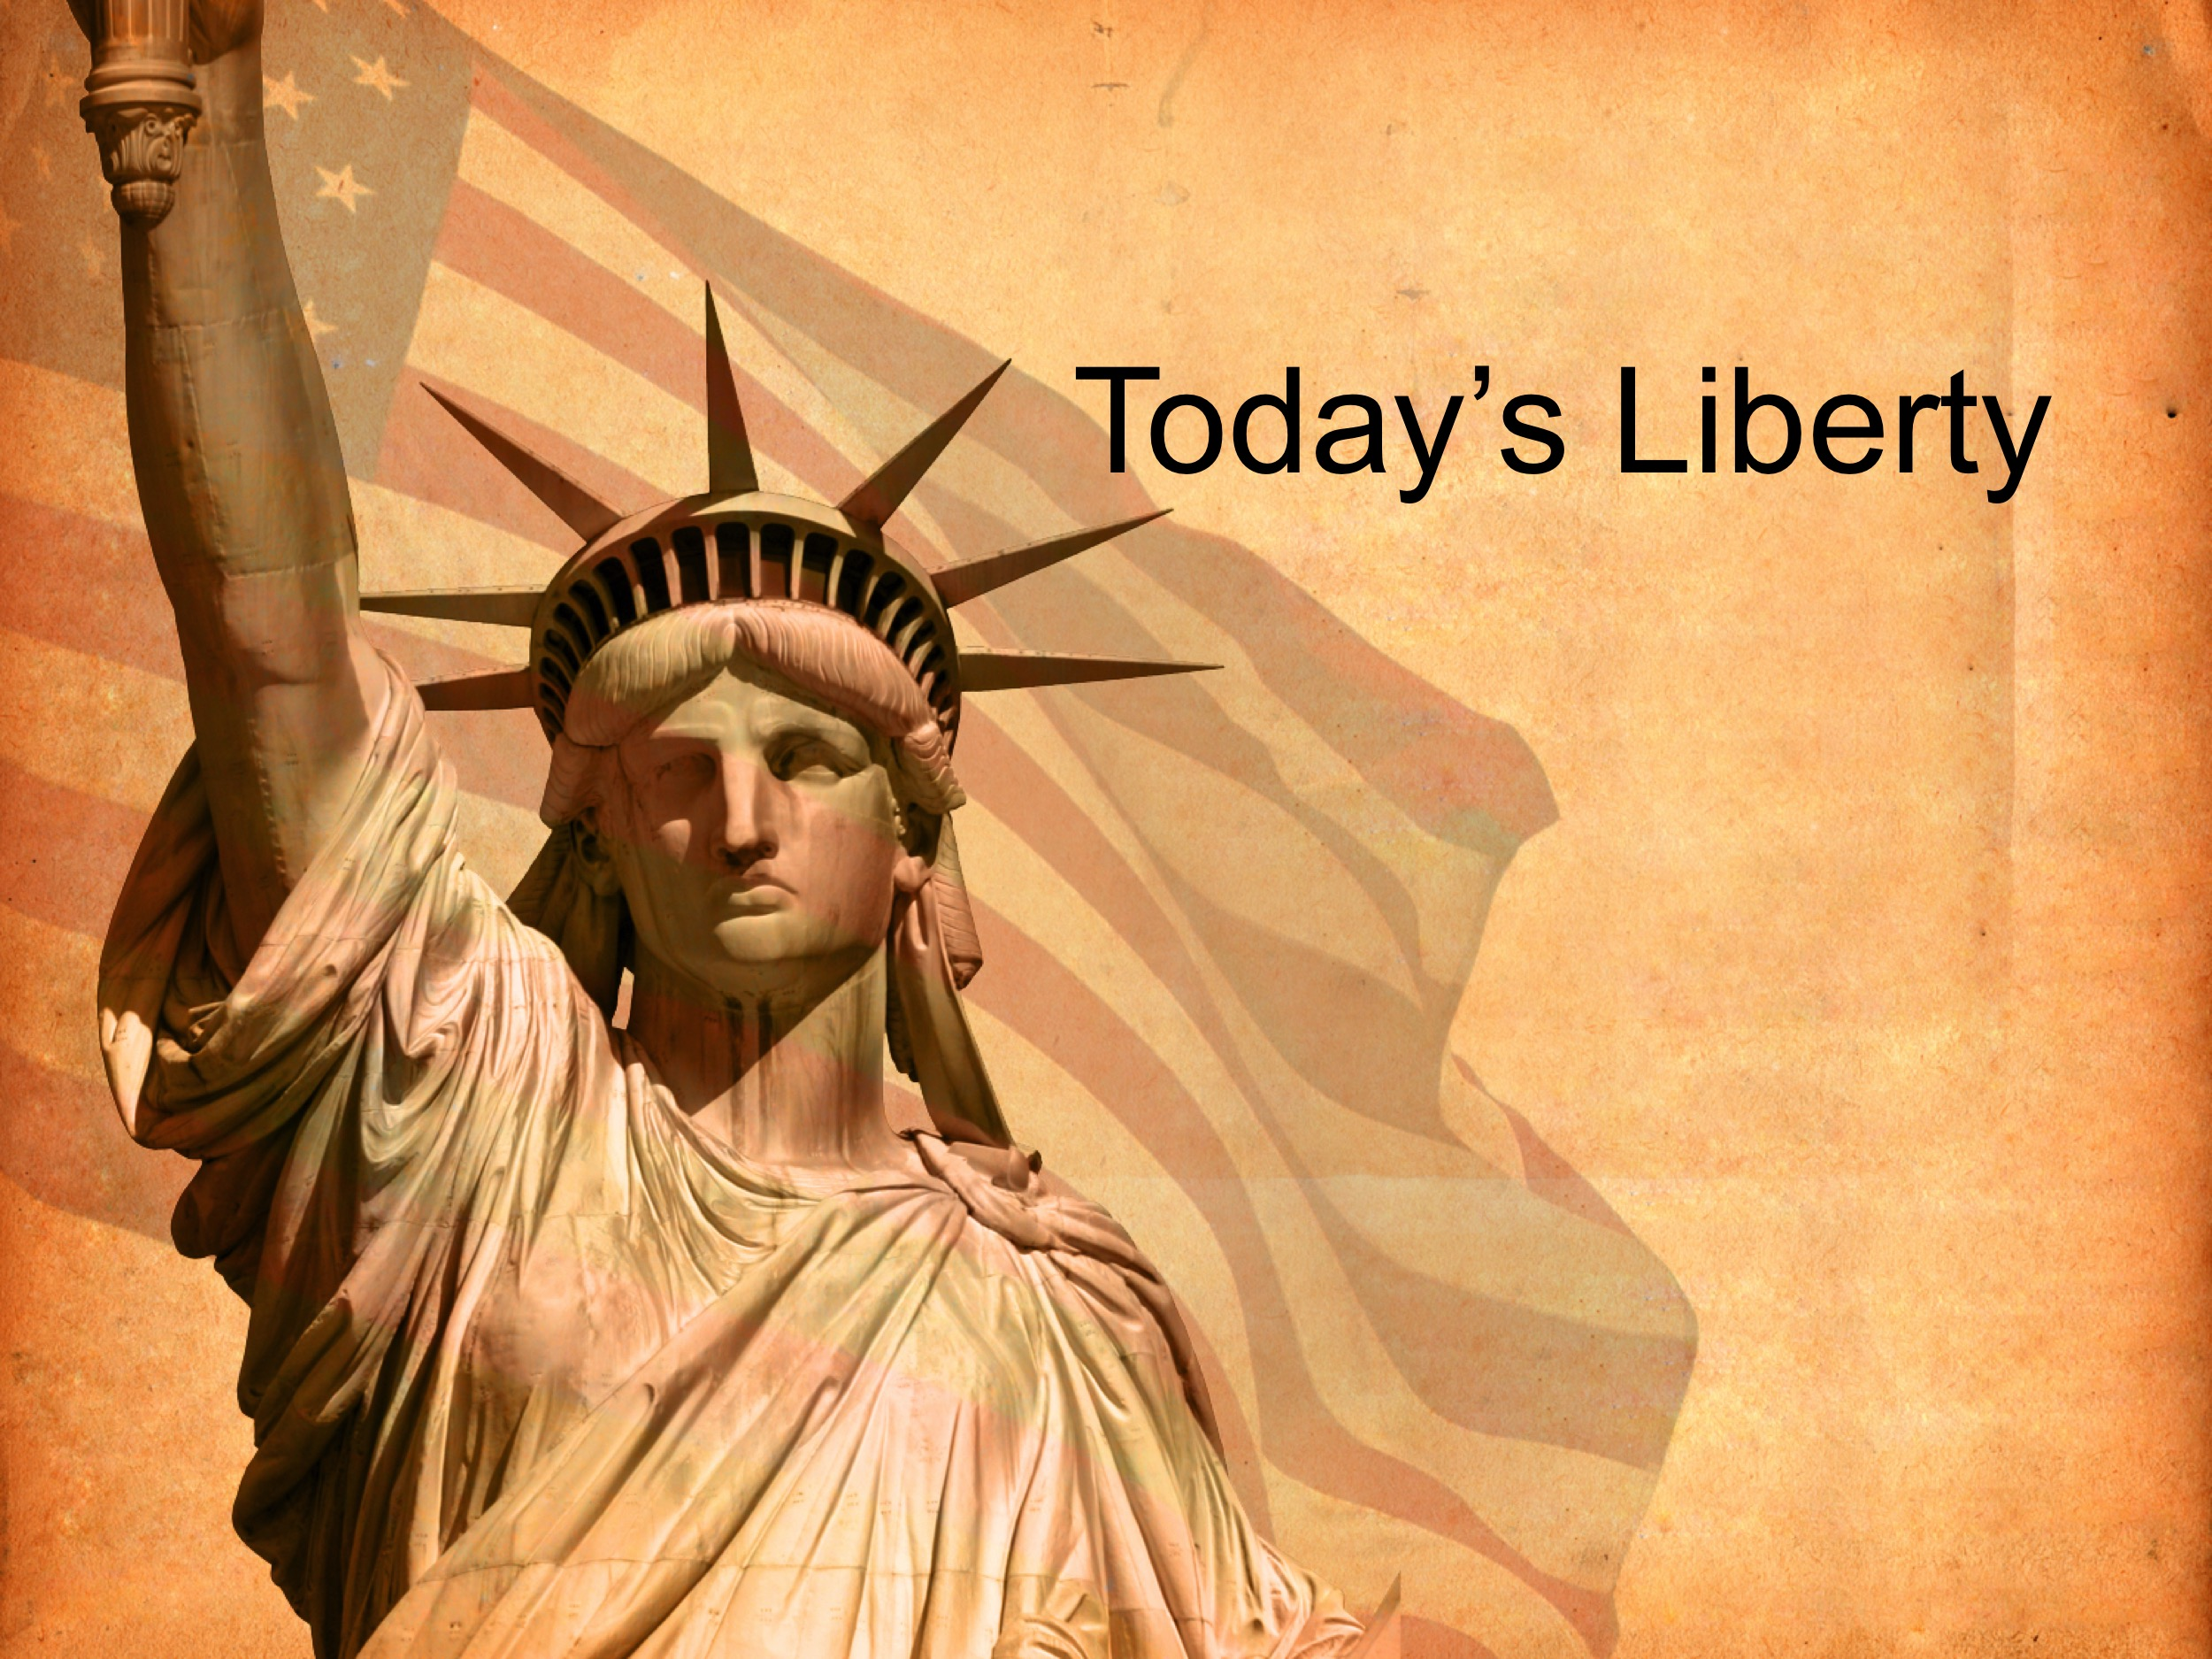 Today's Liberty